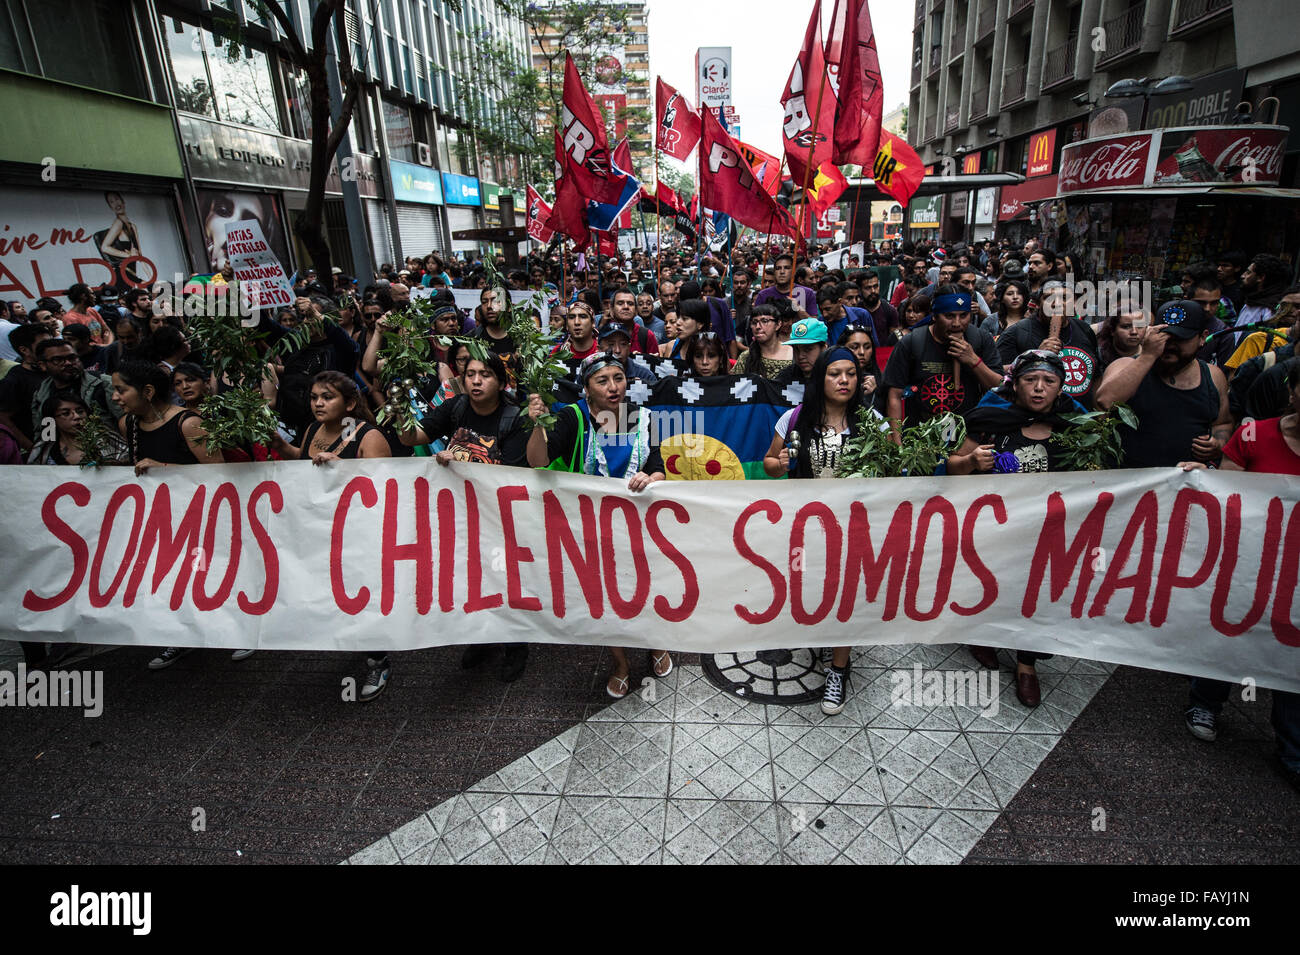 Santiago, Chile. 5th Jan, 2016. Protesters attend a march commemorating the eighth anniversary of the death of Mapuche - Stock Image